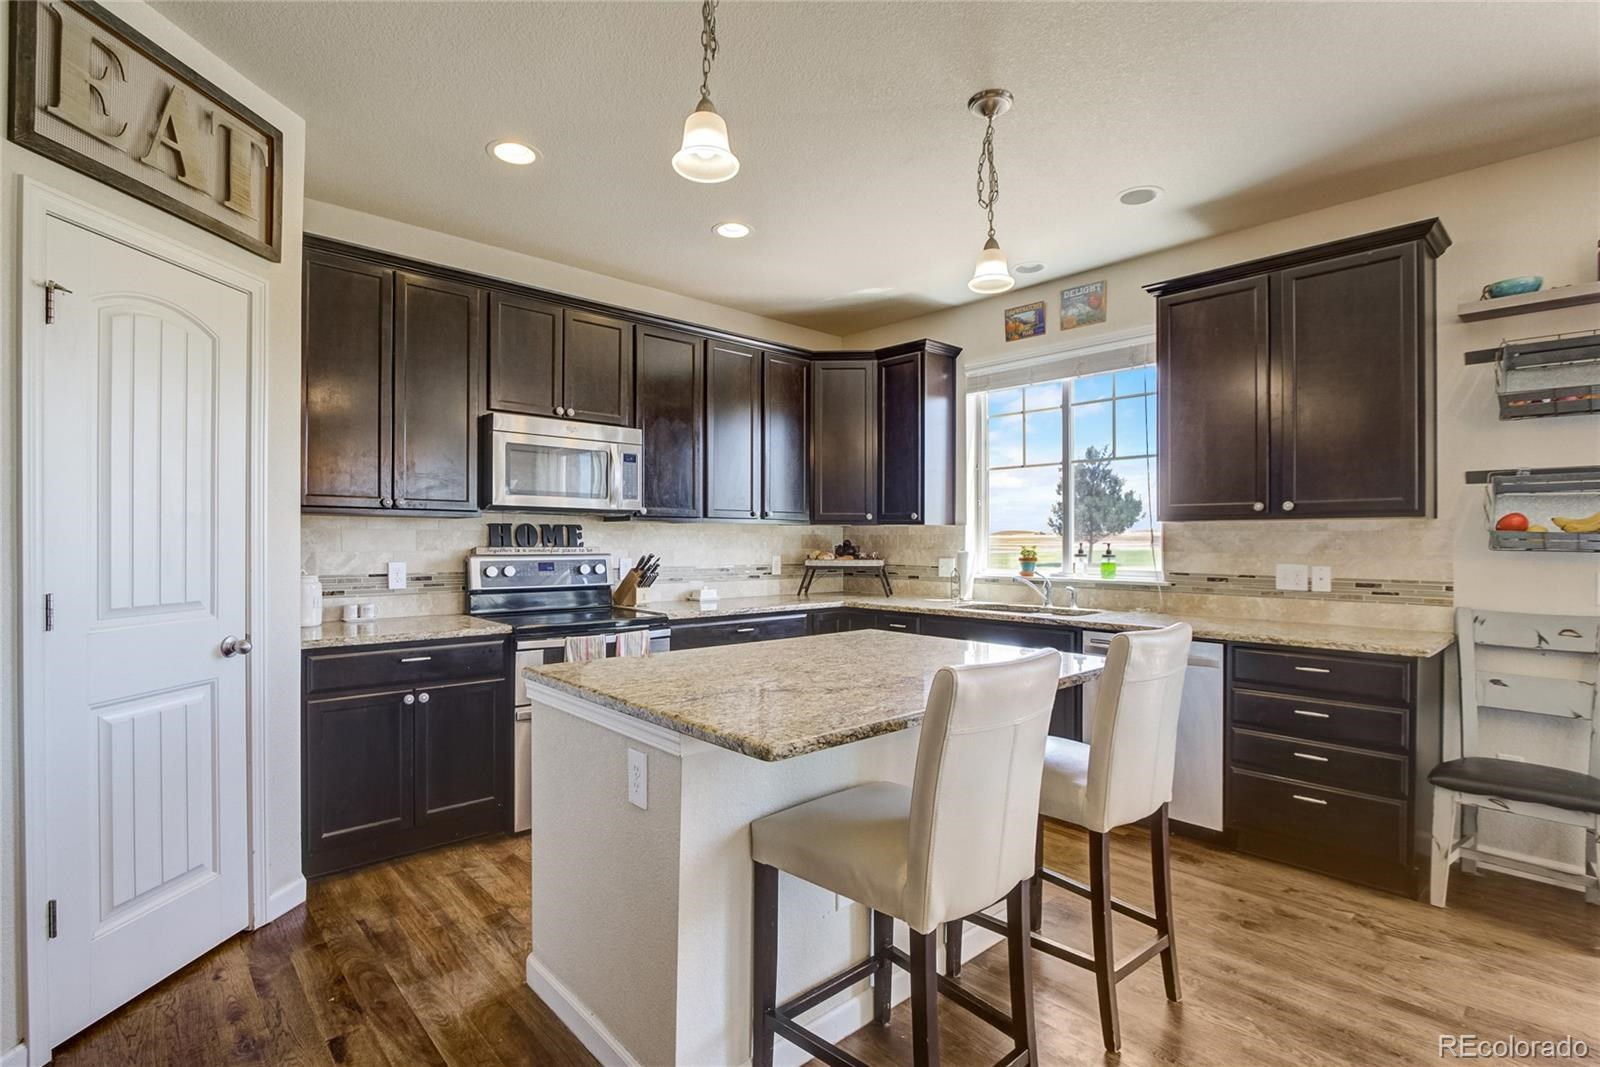 MLS# 8165557 - 9 - 5734 Pineview Court, Windsor, CO 80550